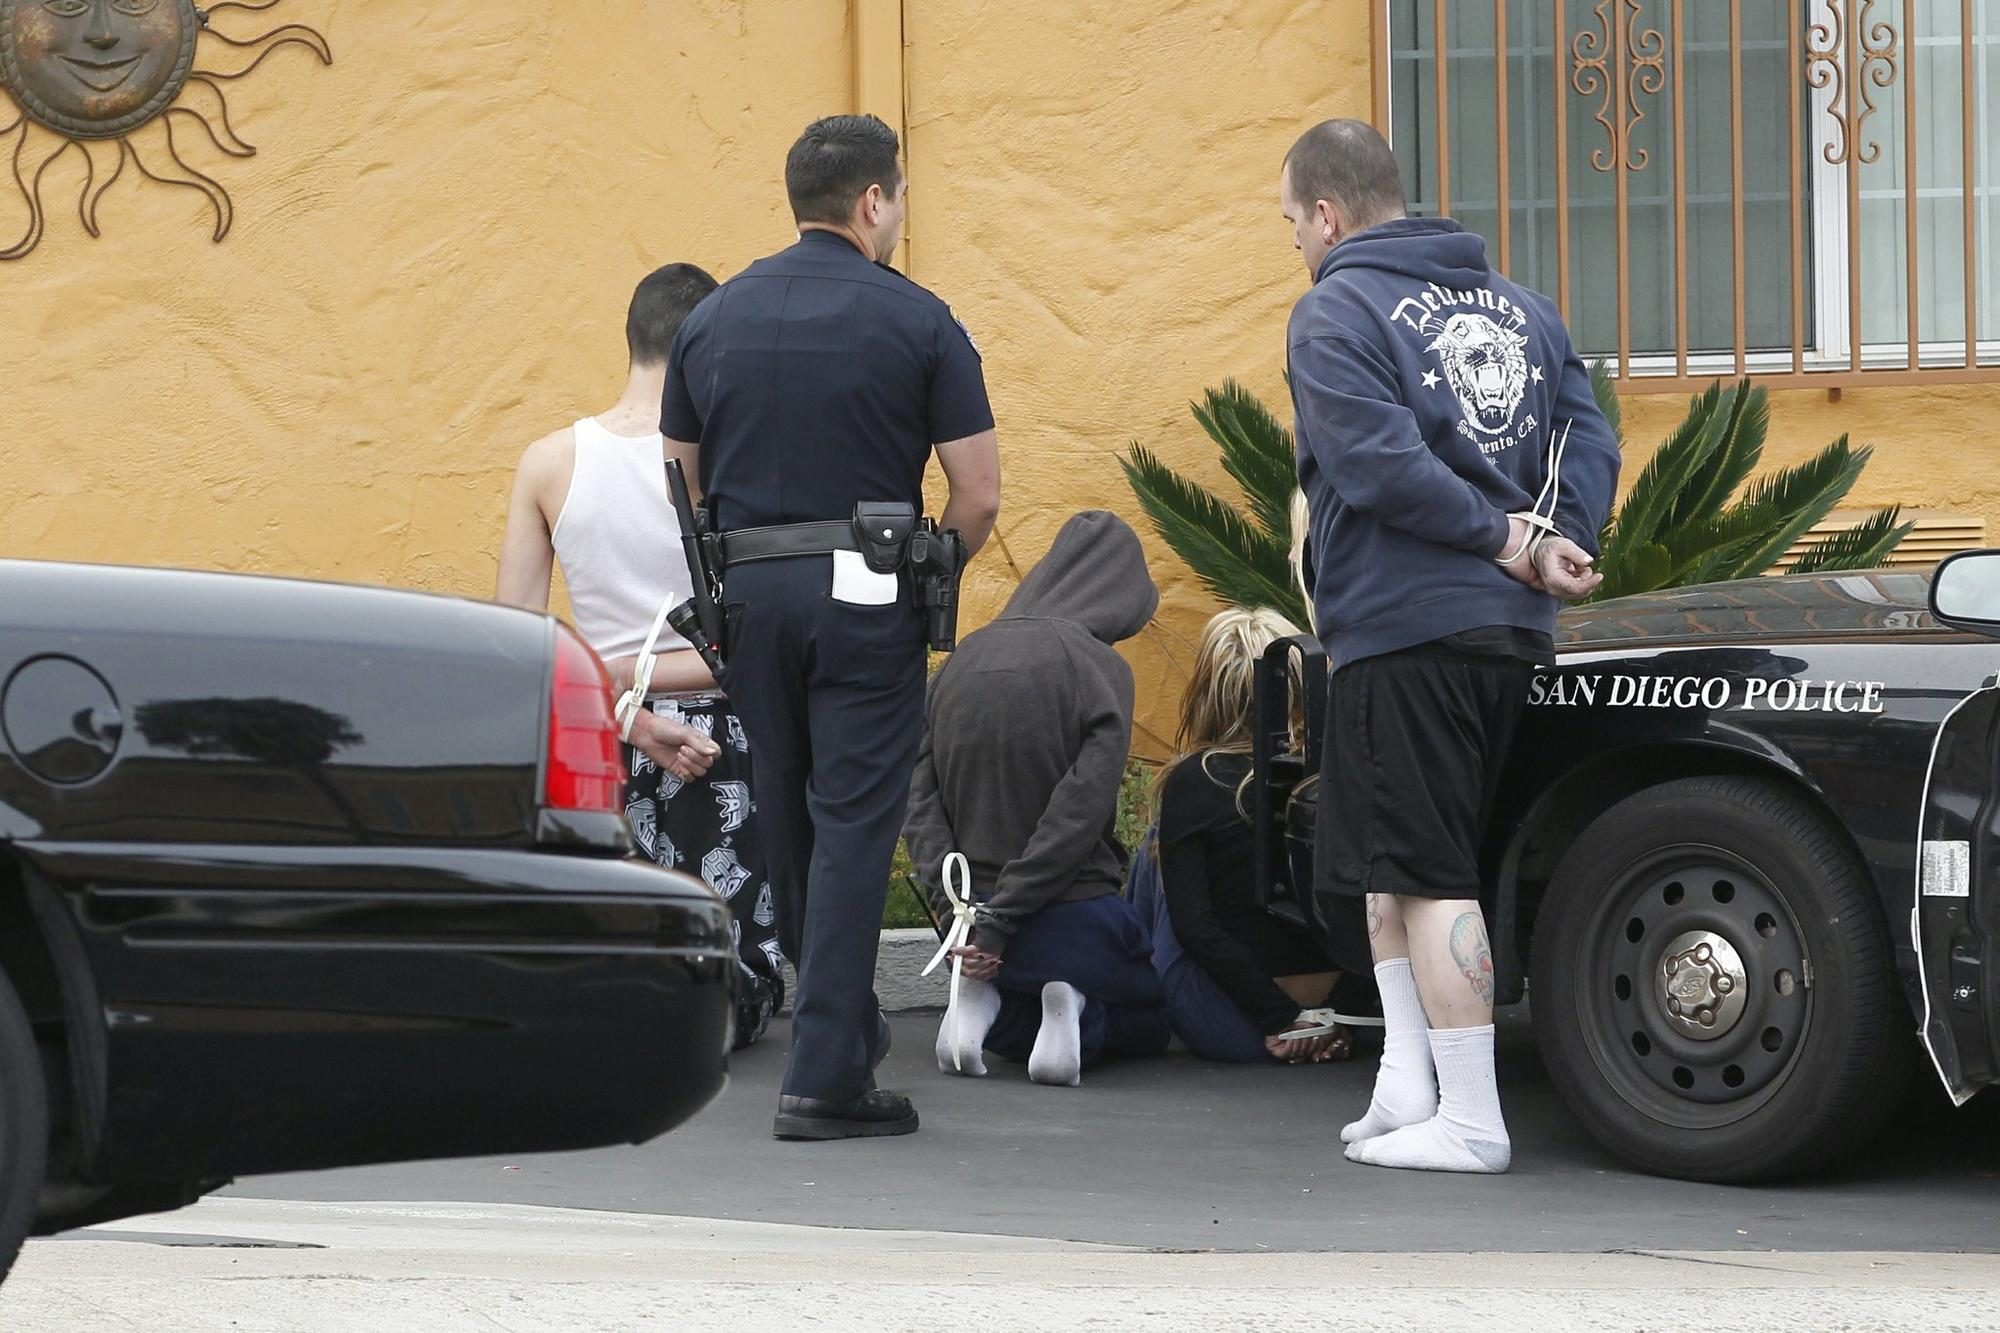 San Diego police and other agencies arrested 14 gang members and associates in San Diego Wednesday morning, while another two were nabbed in Arizona and one in New Jersey.